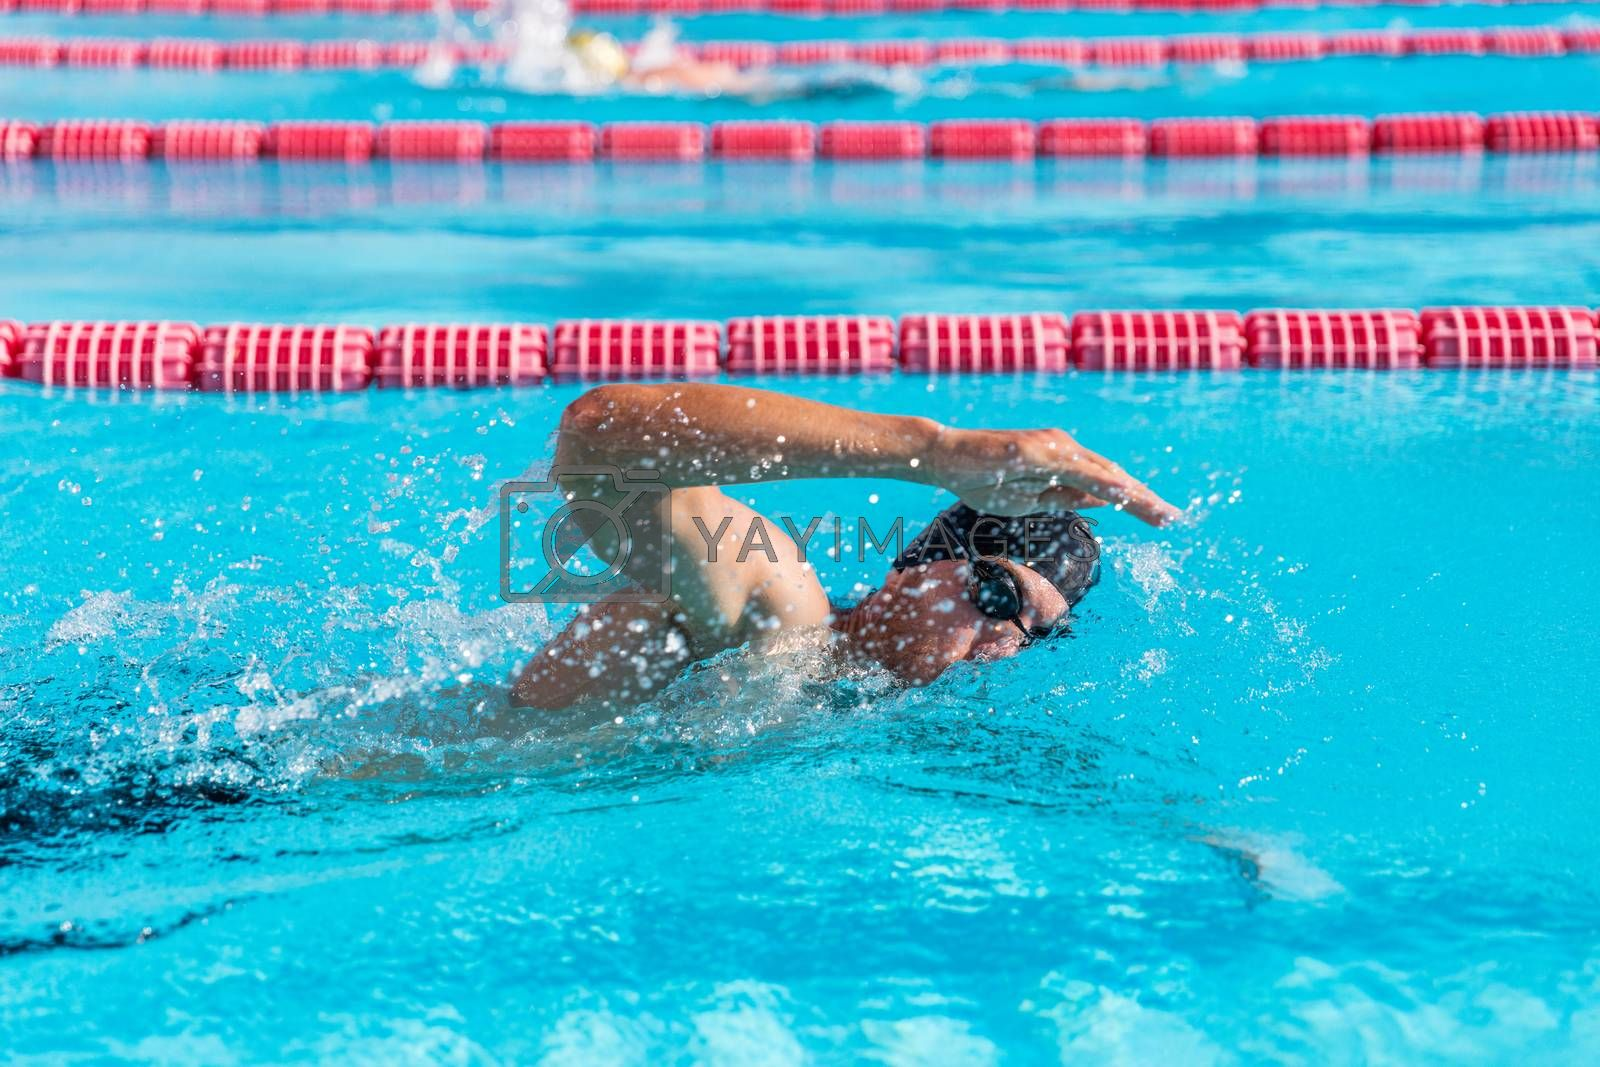 Swimmer man fitness training at swimming pool. Professional male athlete doing crawl freestyle stroke technique by Maridav